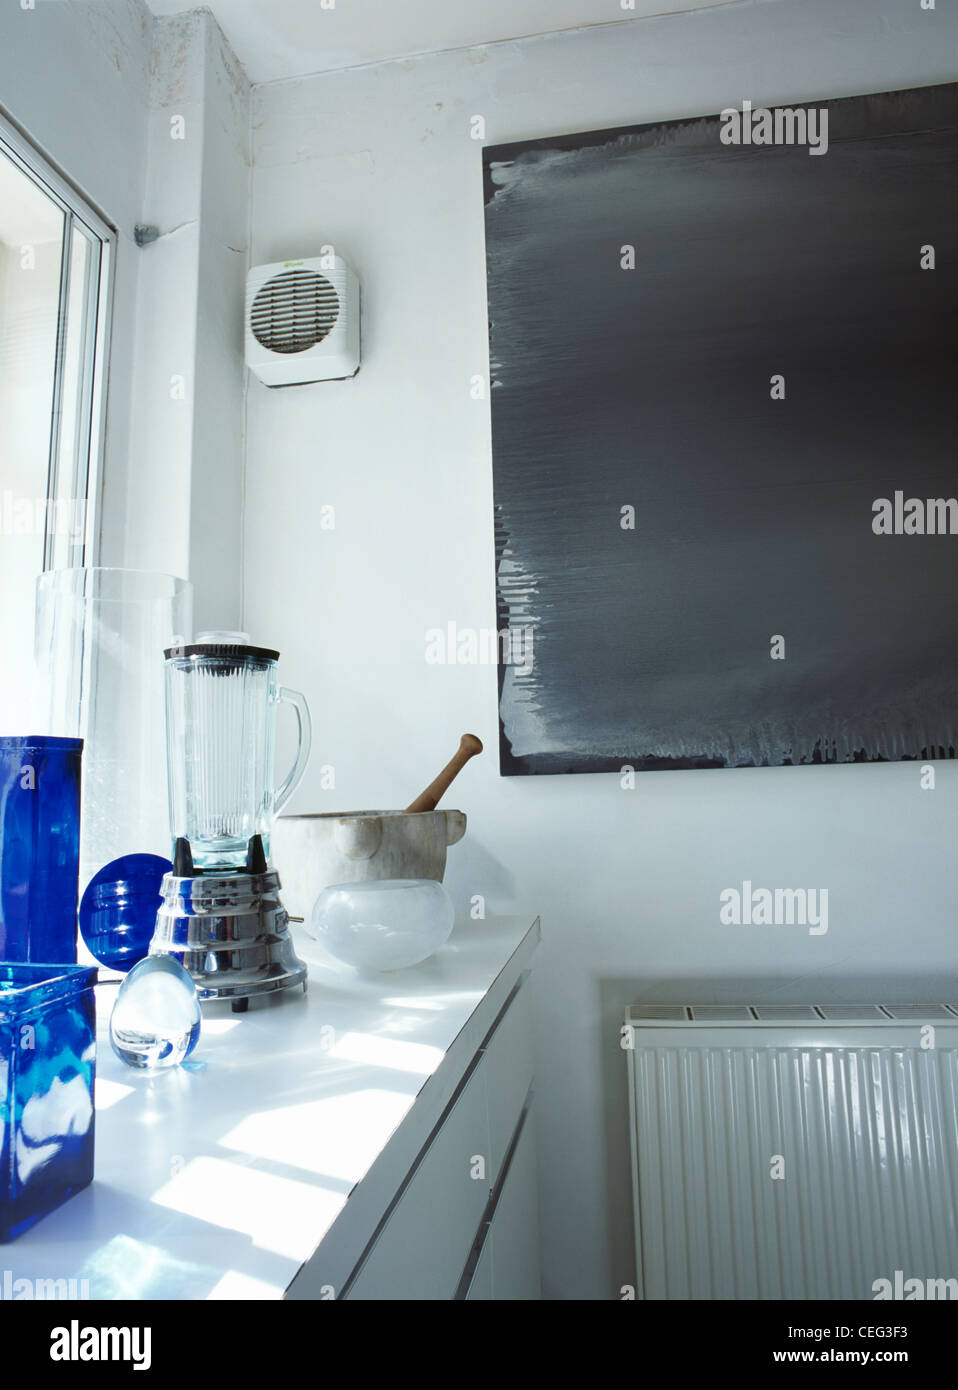 Electric Extractor Fan On Wall In Modern White Kitchen With Waring Stock Photo Alamy